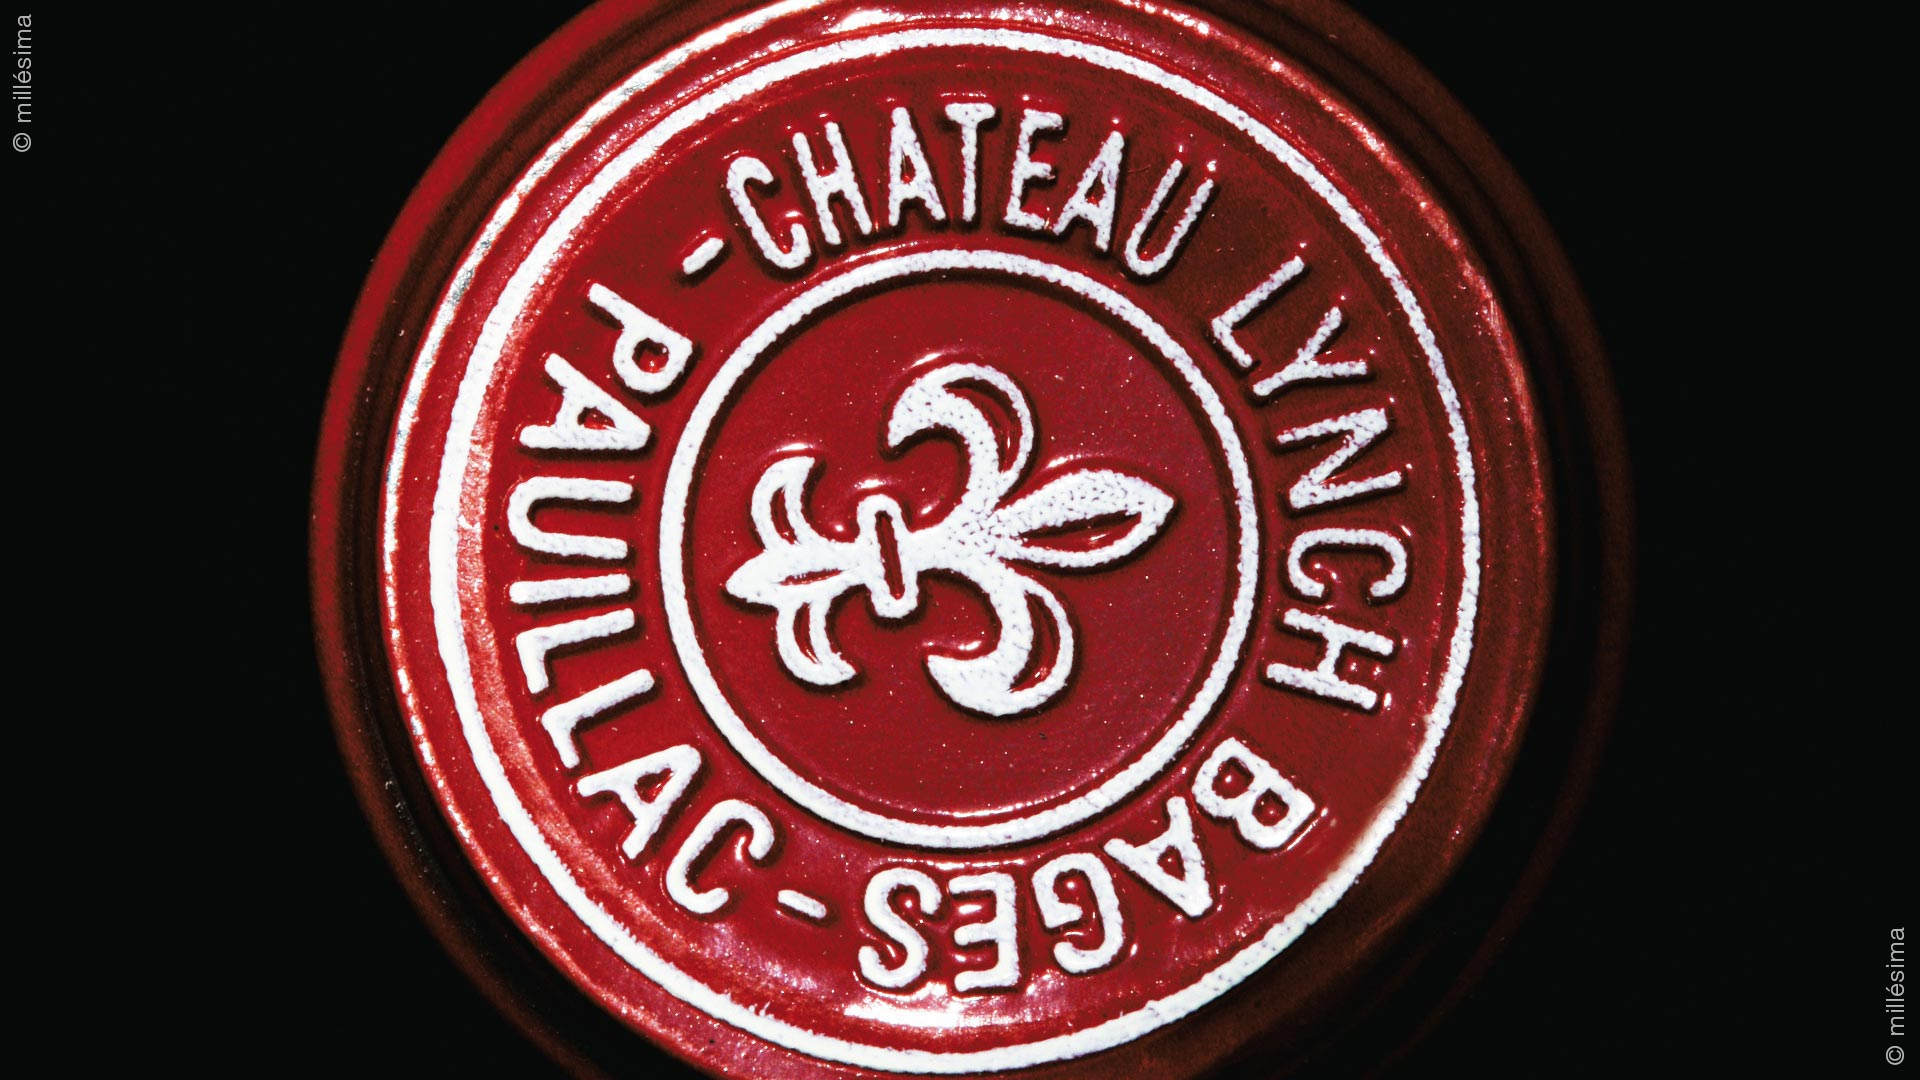 Chateau Lynch-Bages 2000 - 1